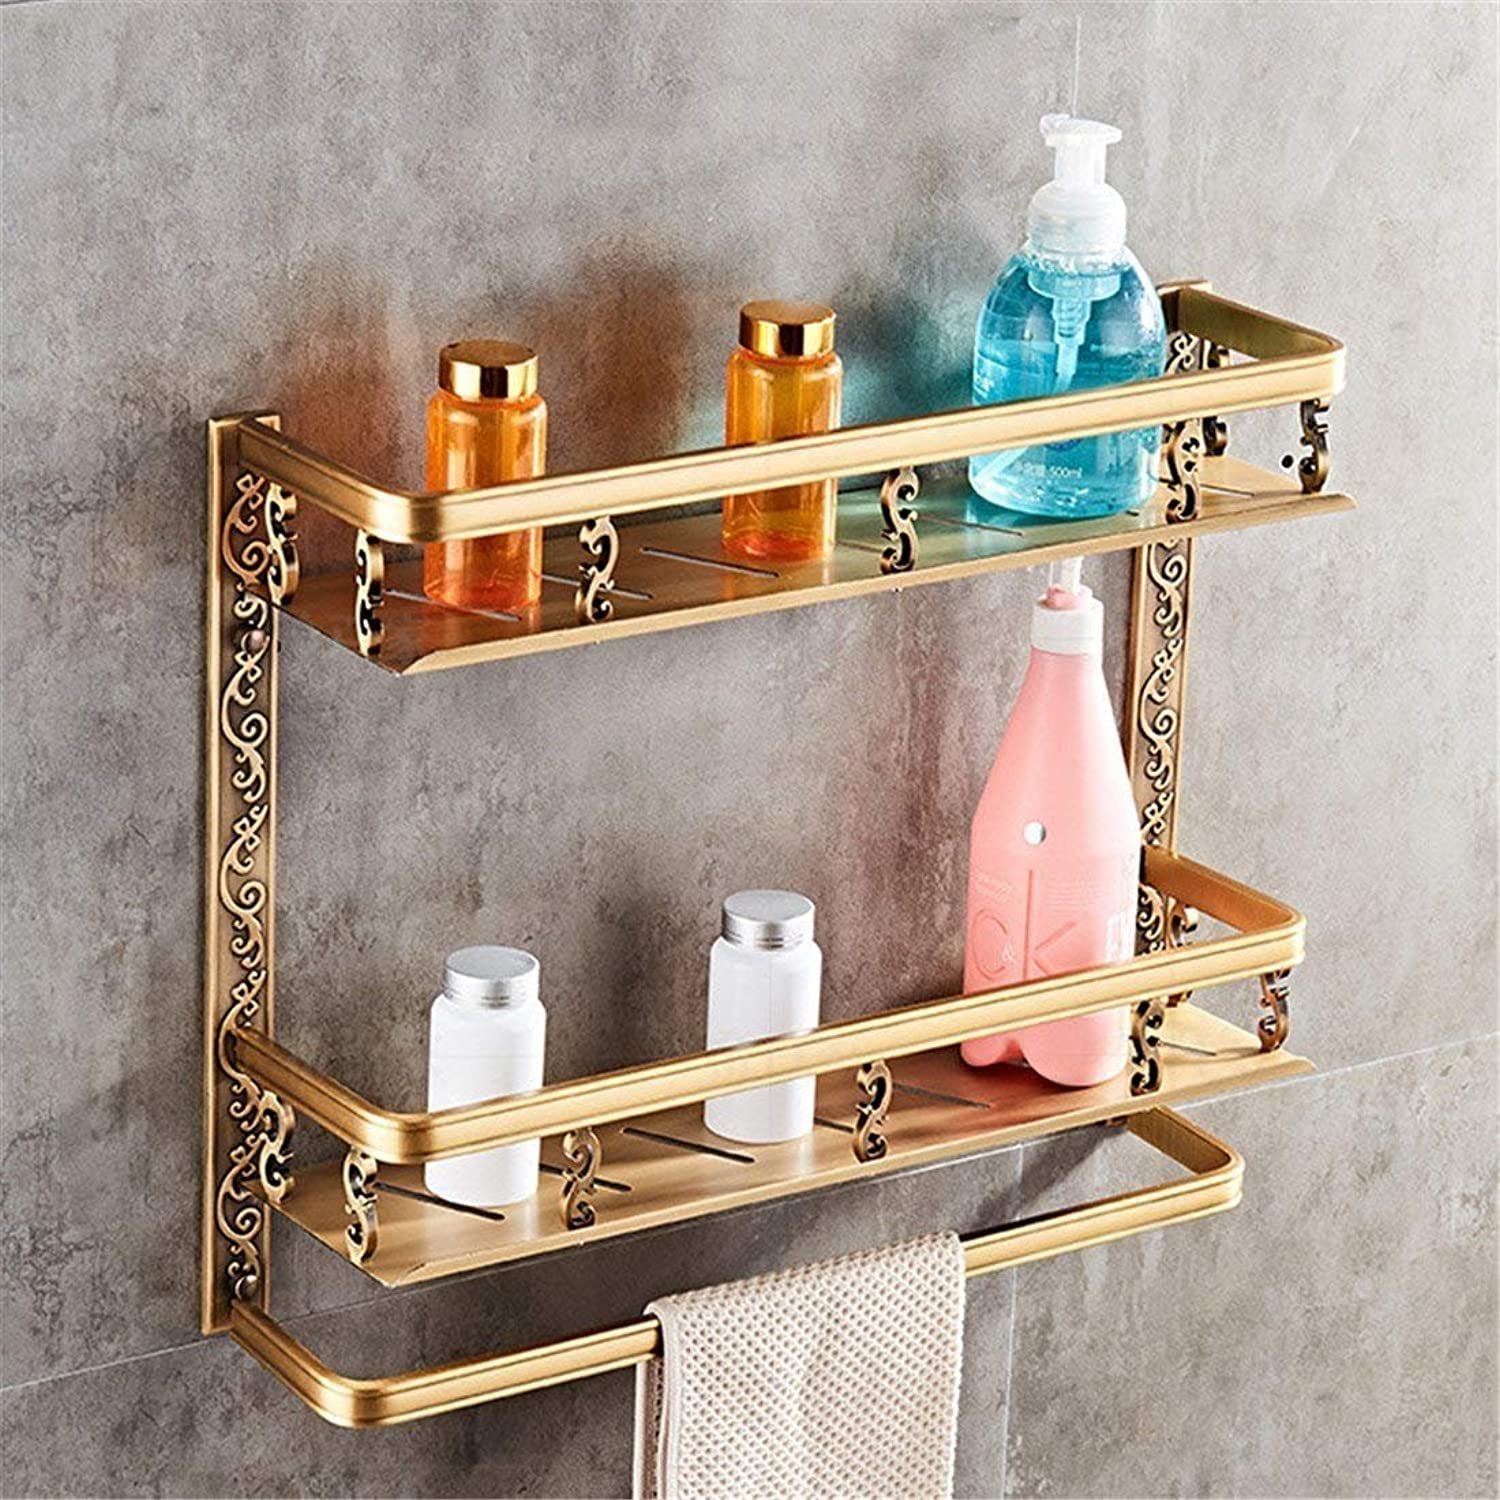 European Style of The Aluminum Antique Copper Provision of Bathroom, Toilet, Dry-Towels,Chassis Ring 2